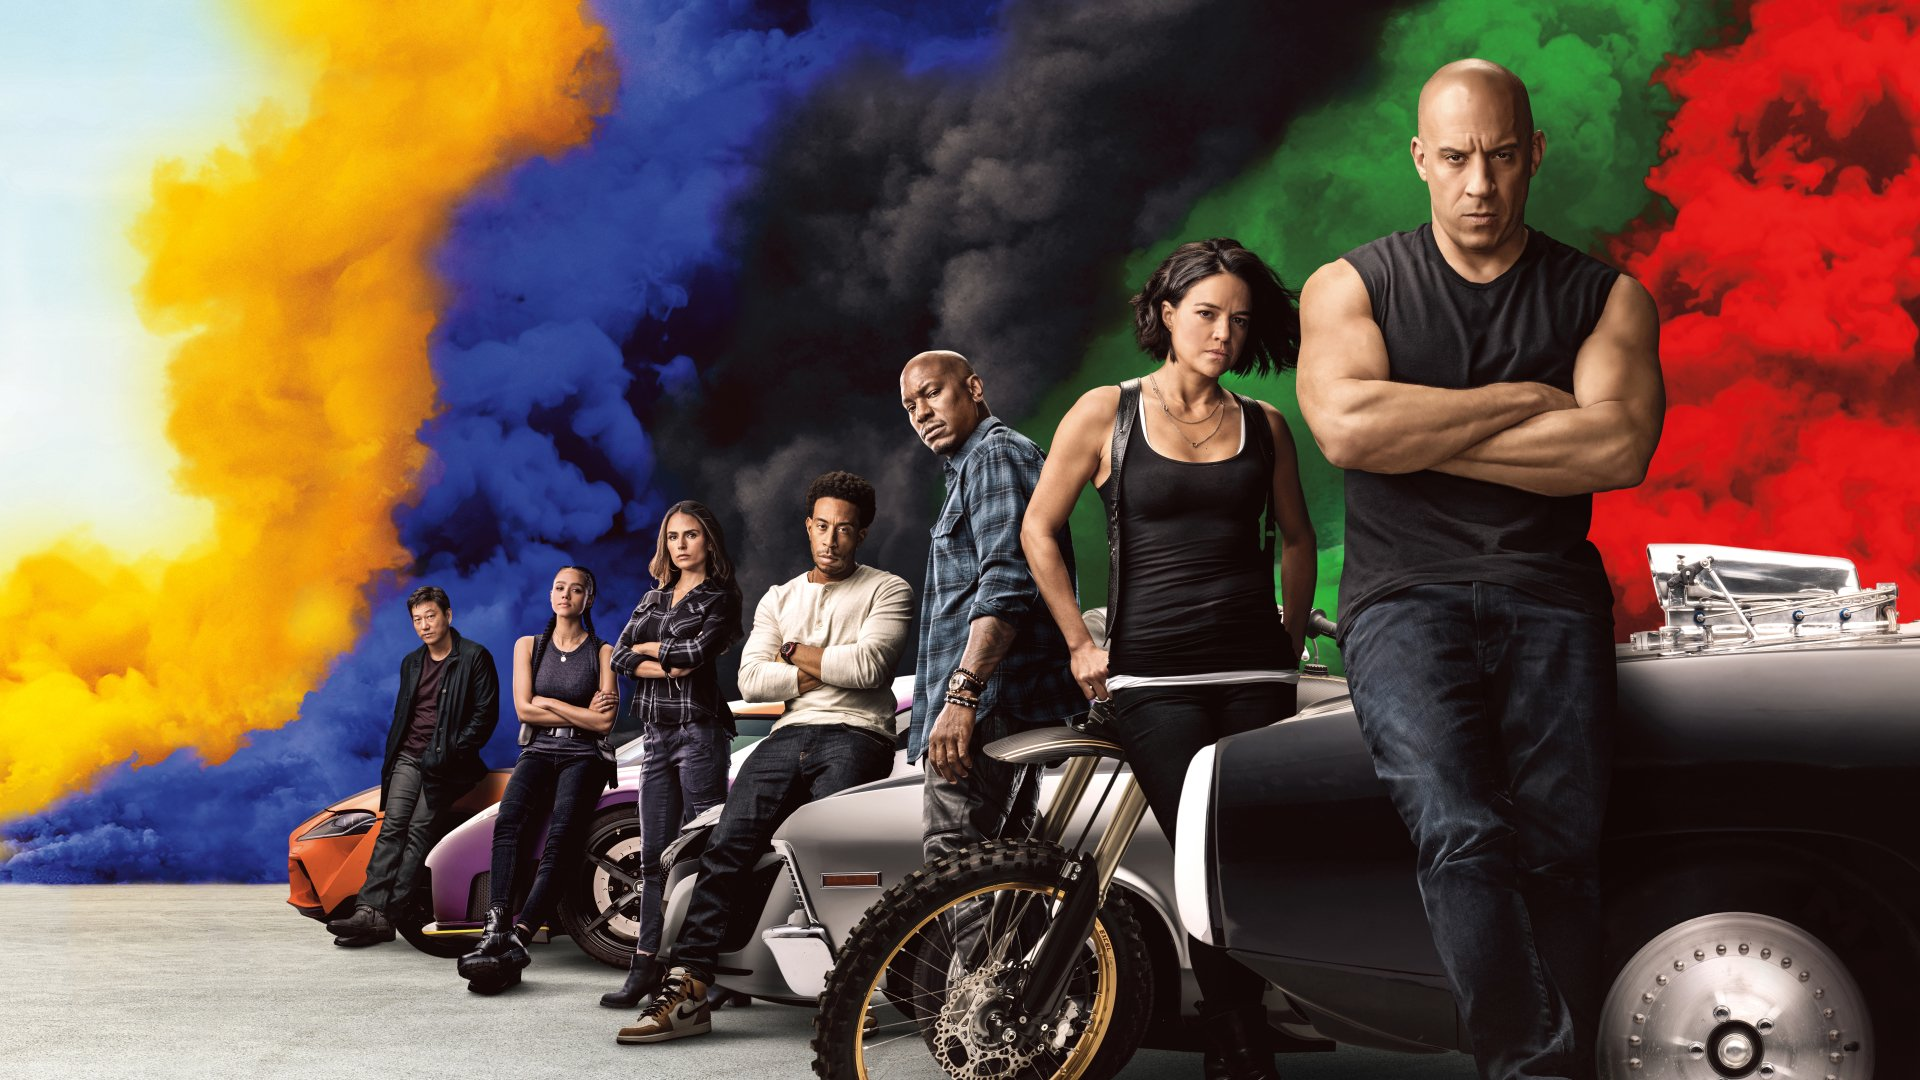 40 Fast Furious 9 HD Wallpapers Background Images 1920x1080